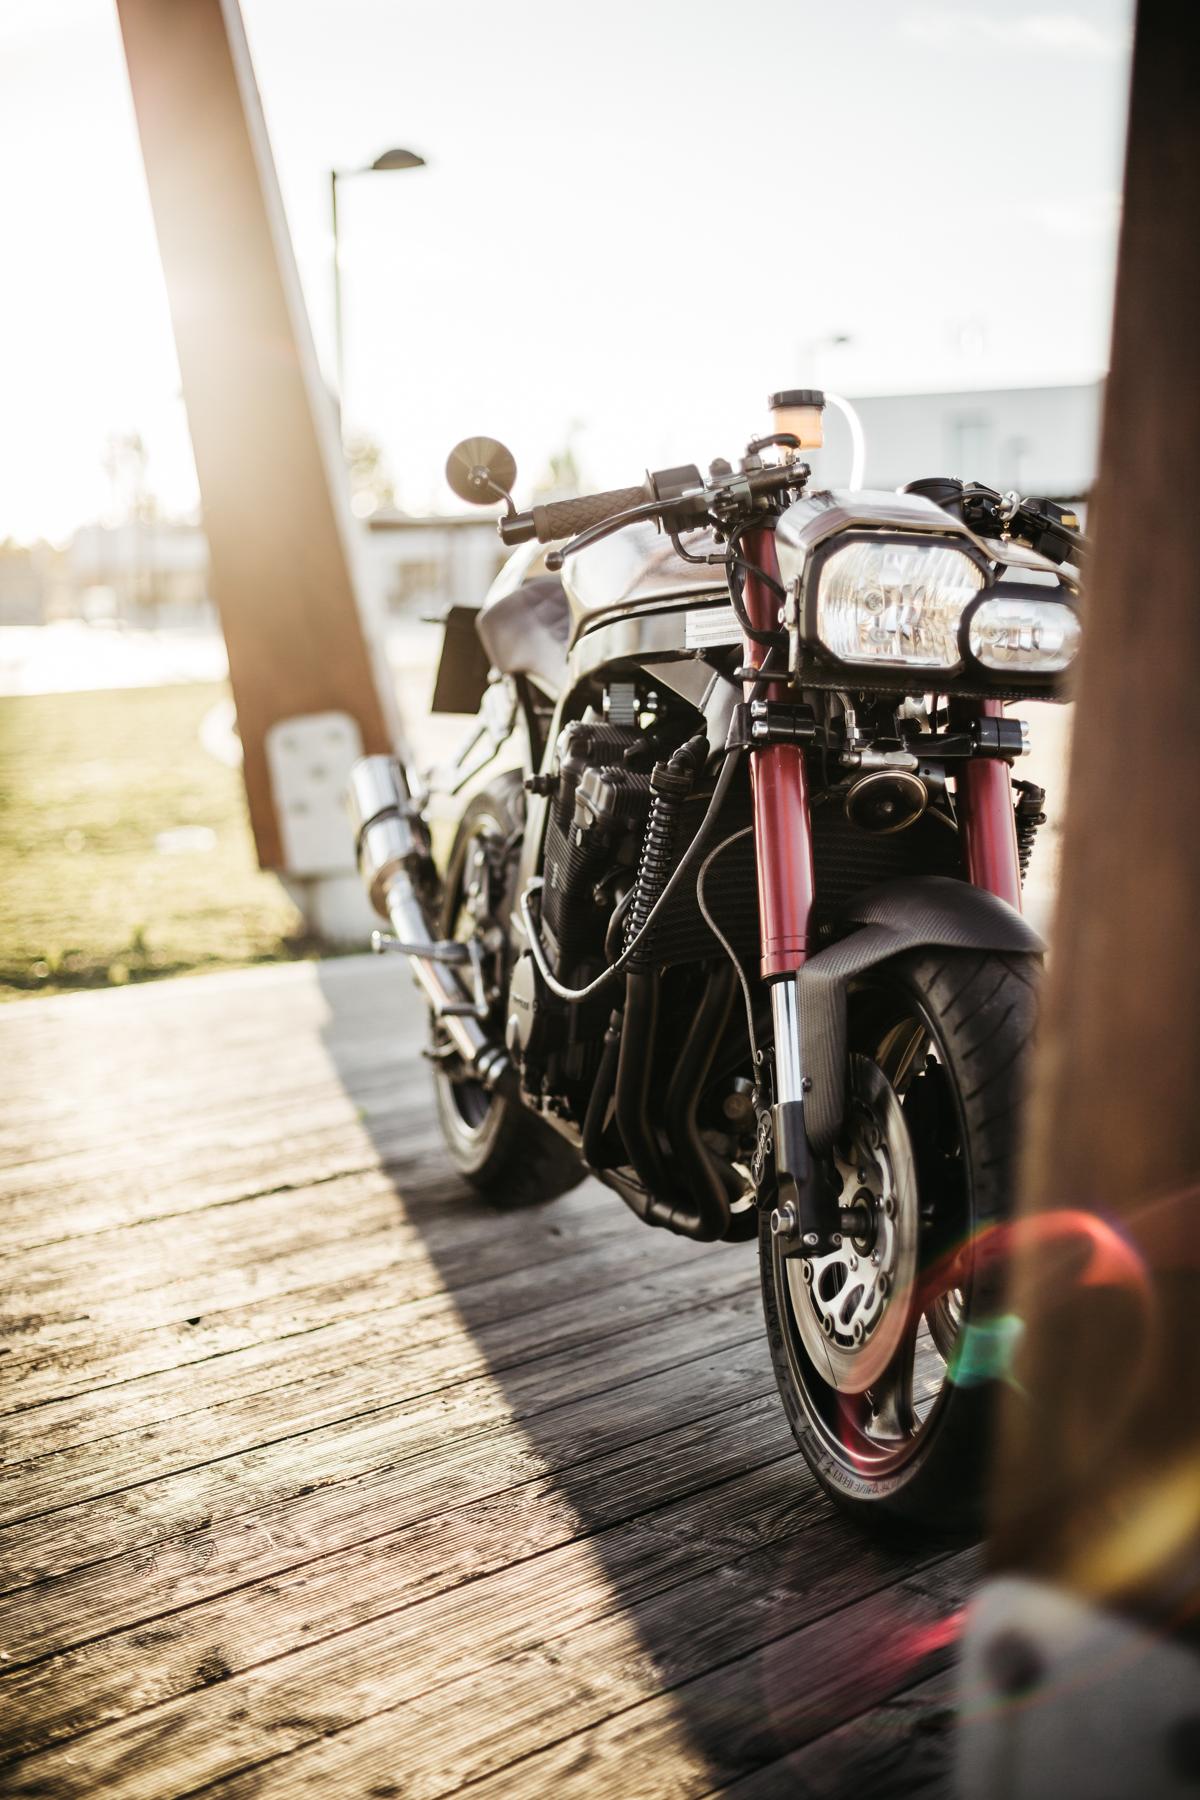 Suzuki GSXR 750 Cafe Fighter